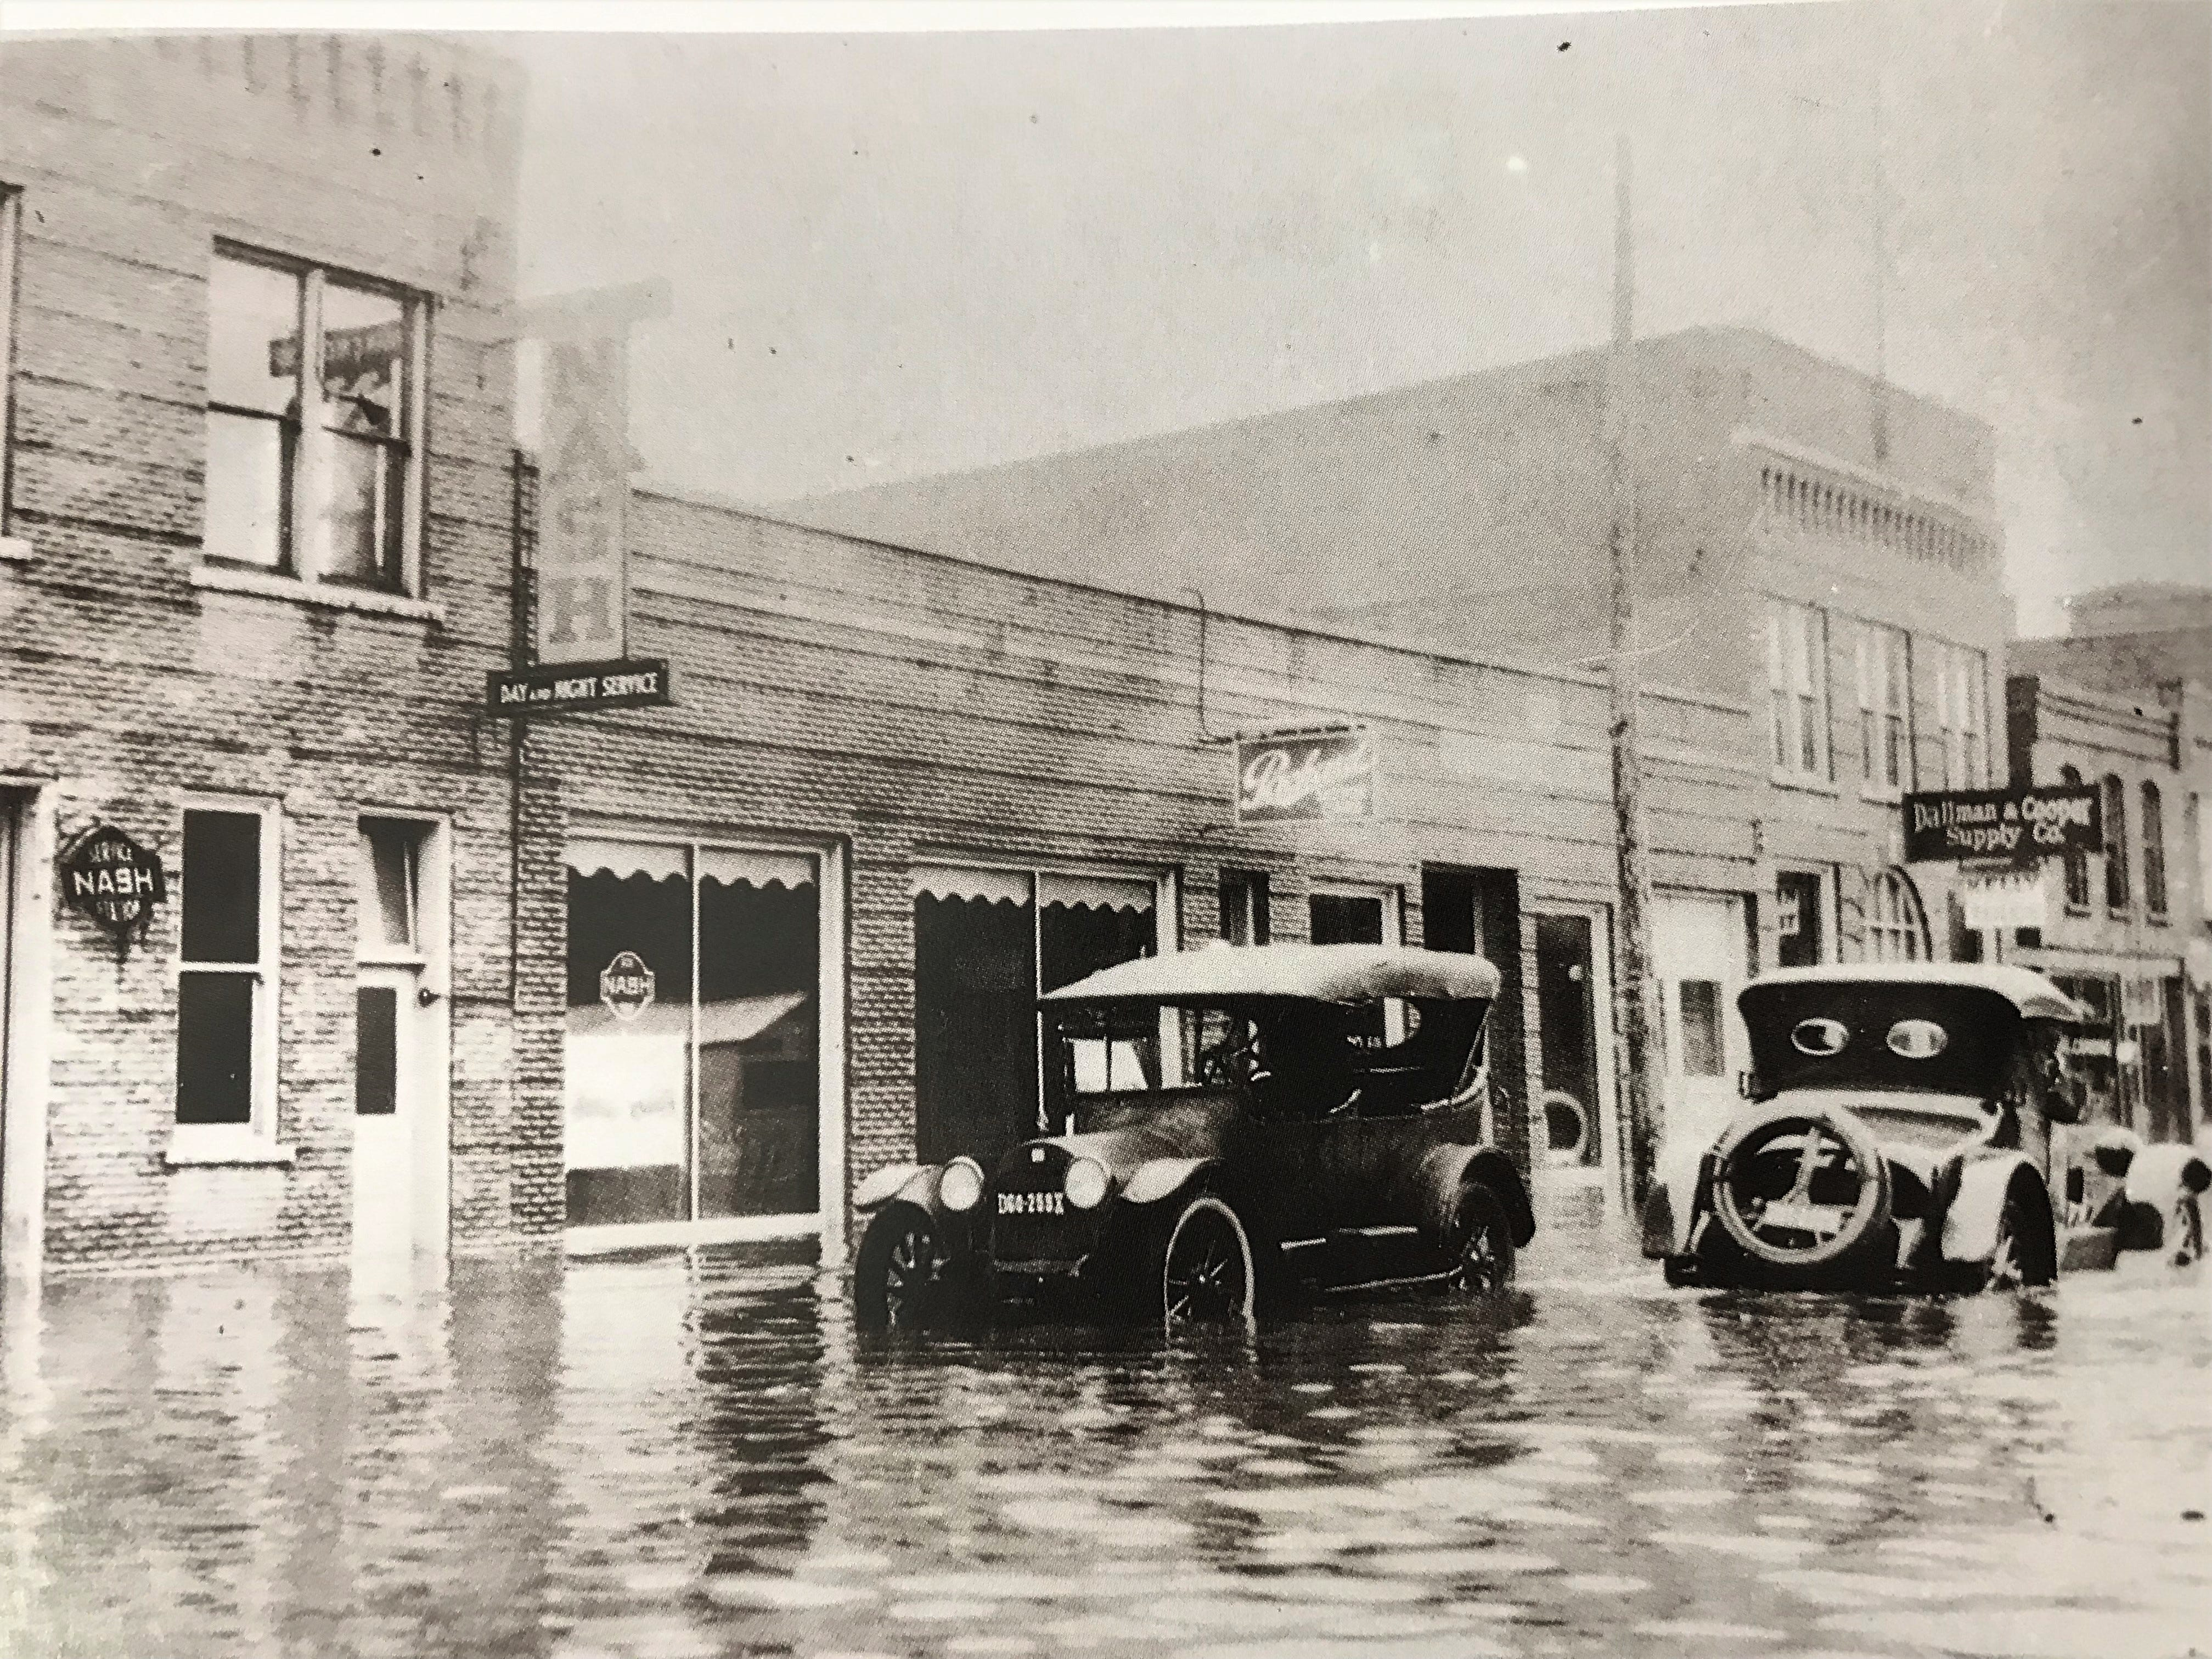 Third Street was a river in the wake of the 1924 flood in Fond du Lac. The city recorded 8 inches of rain in a 24-hour period between Aug. 5 and 5, 1924.